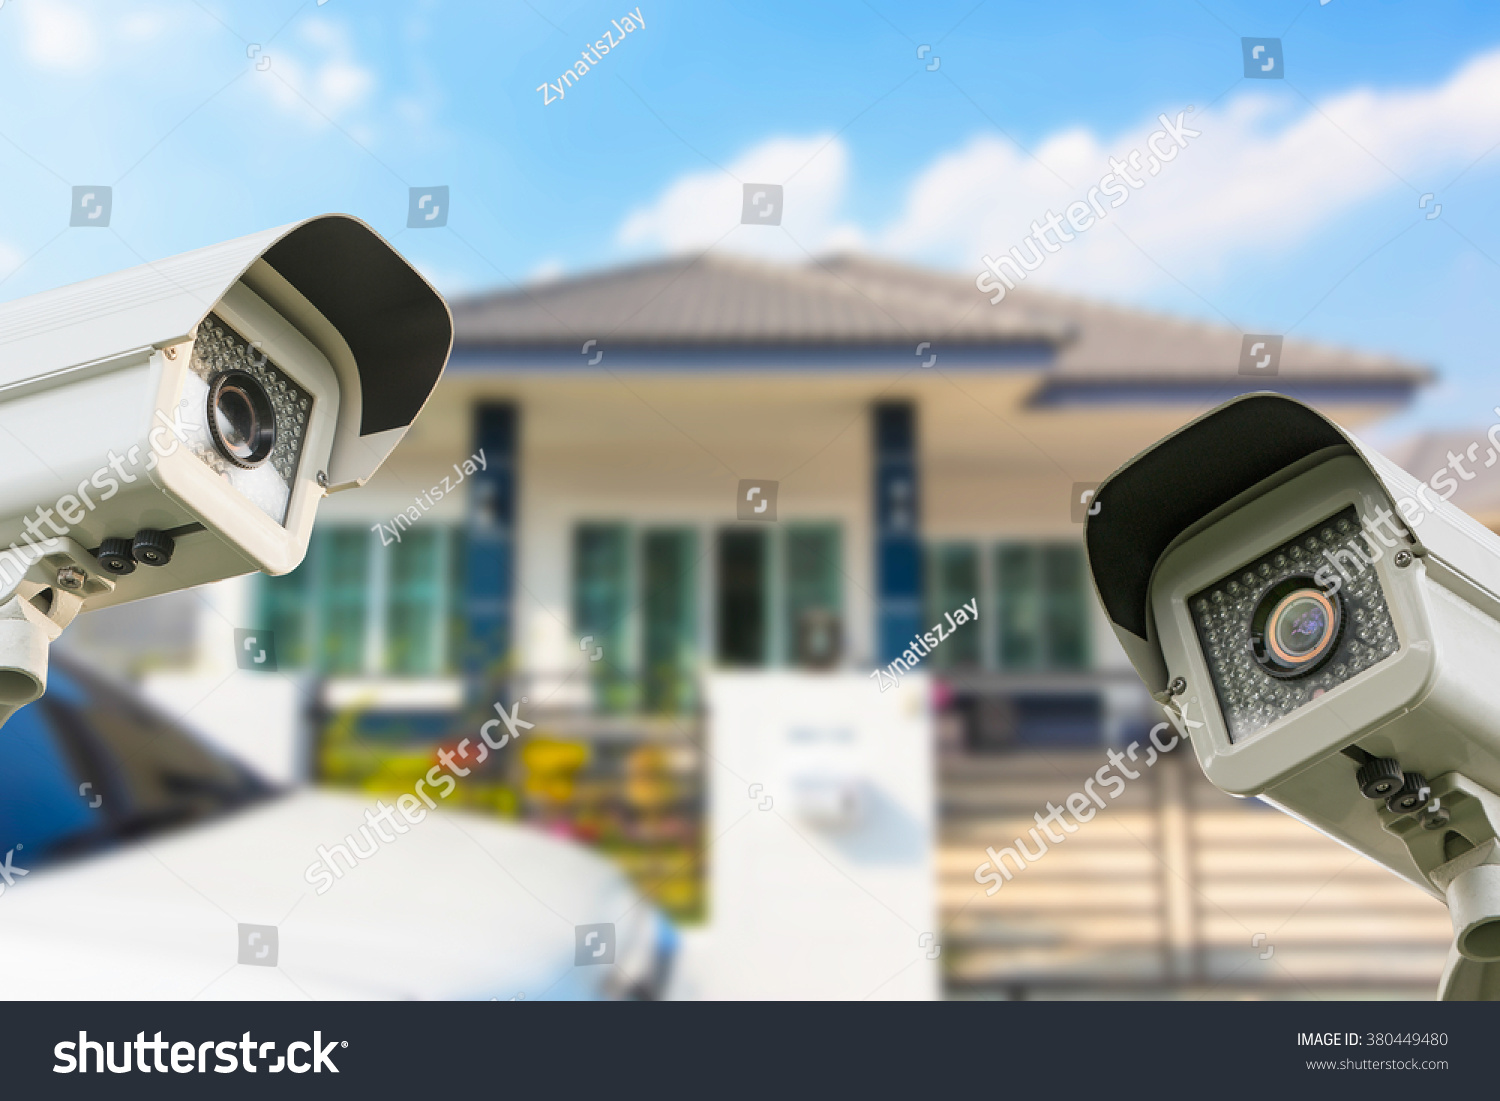 Cctv Home Cctv Home Camera Security Operating House Stock Photo Edit Now